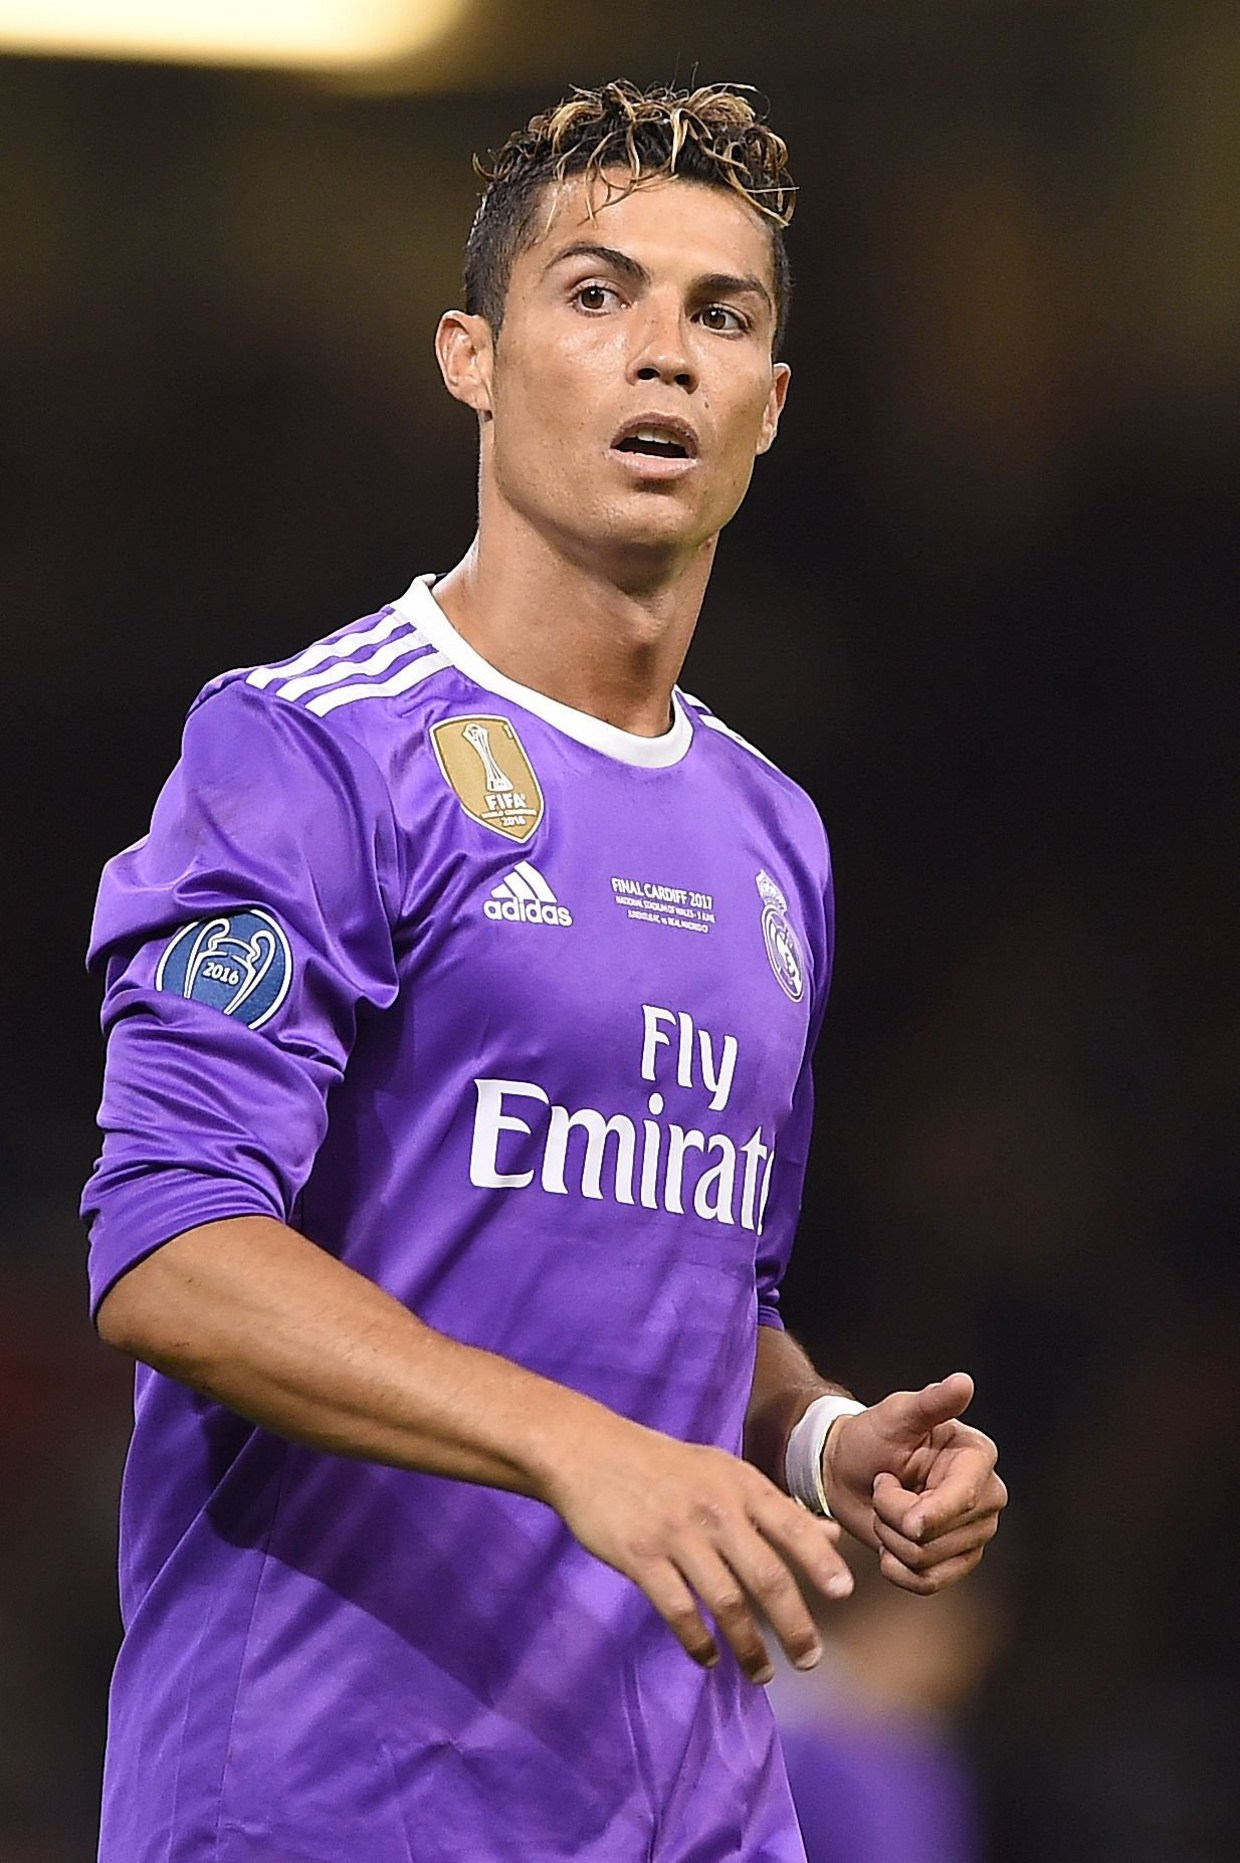 Real Madrid Soccer Star Ronaldo Charged With Tax Fraud By Spanish Prosecutors